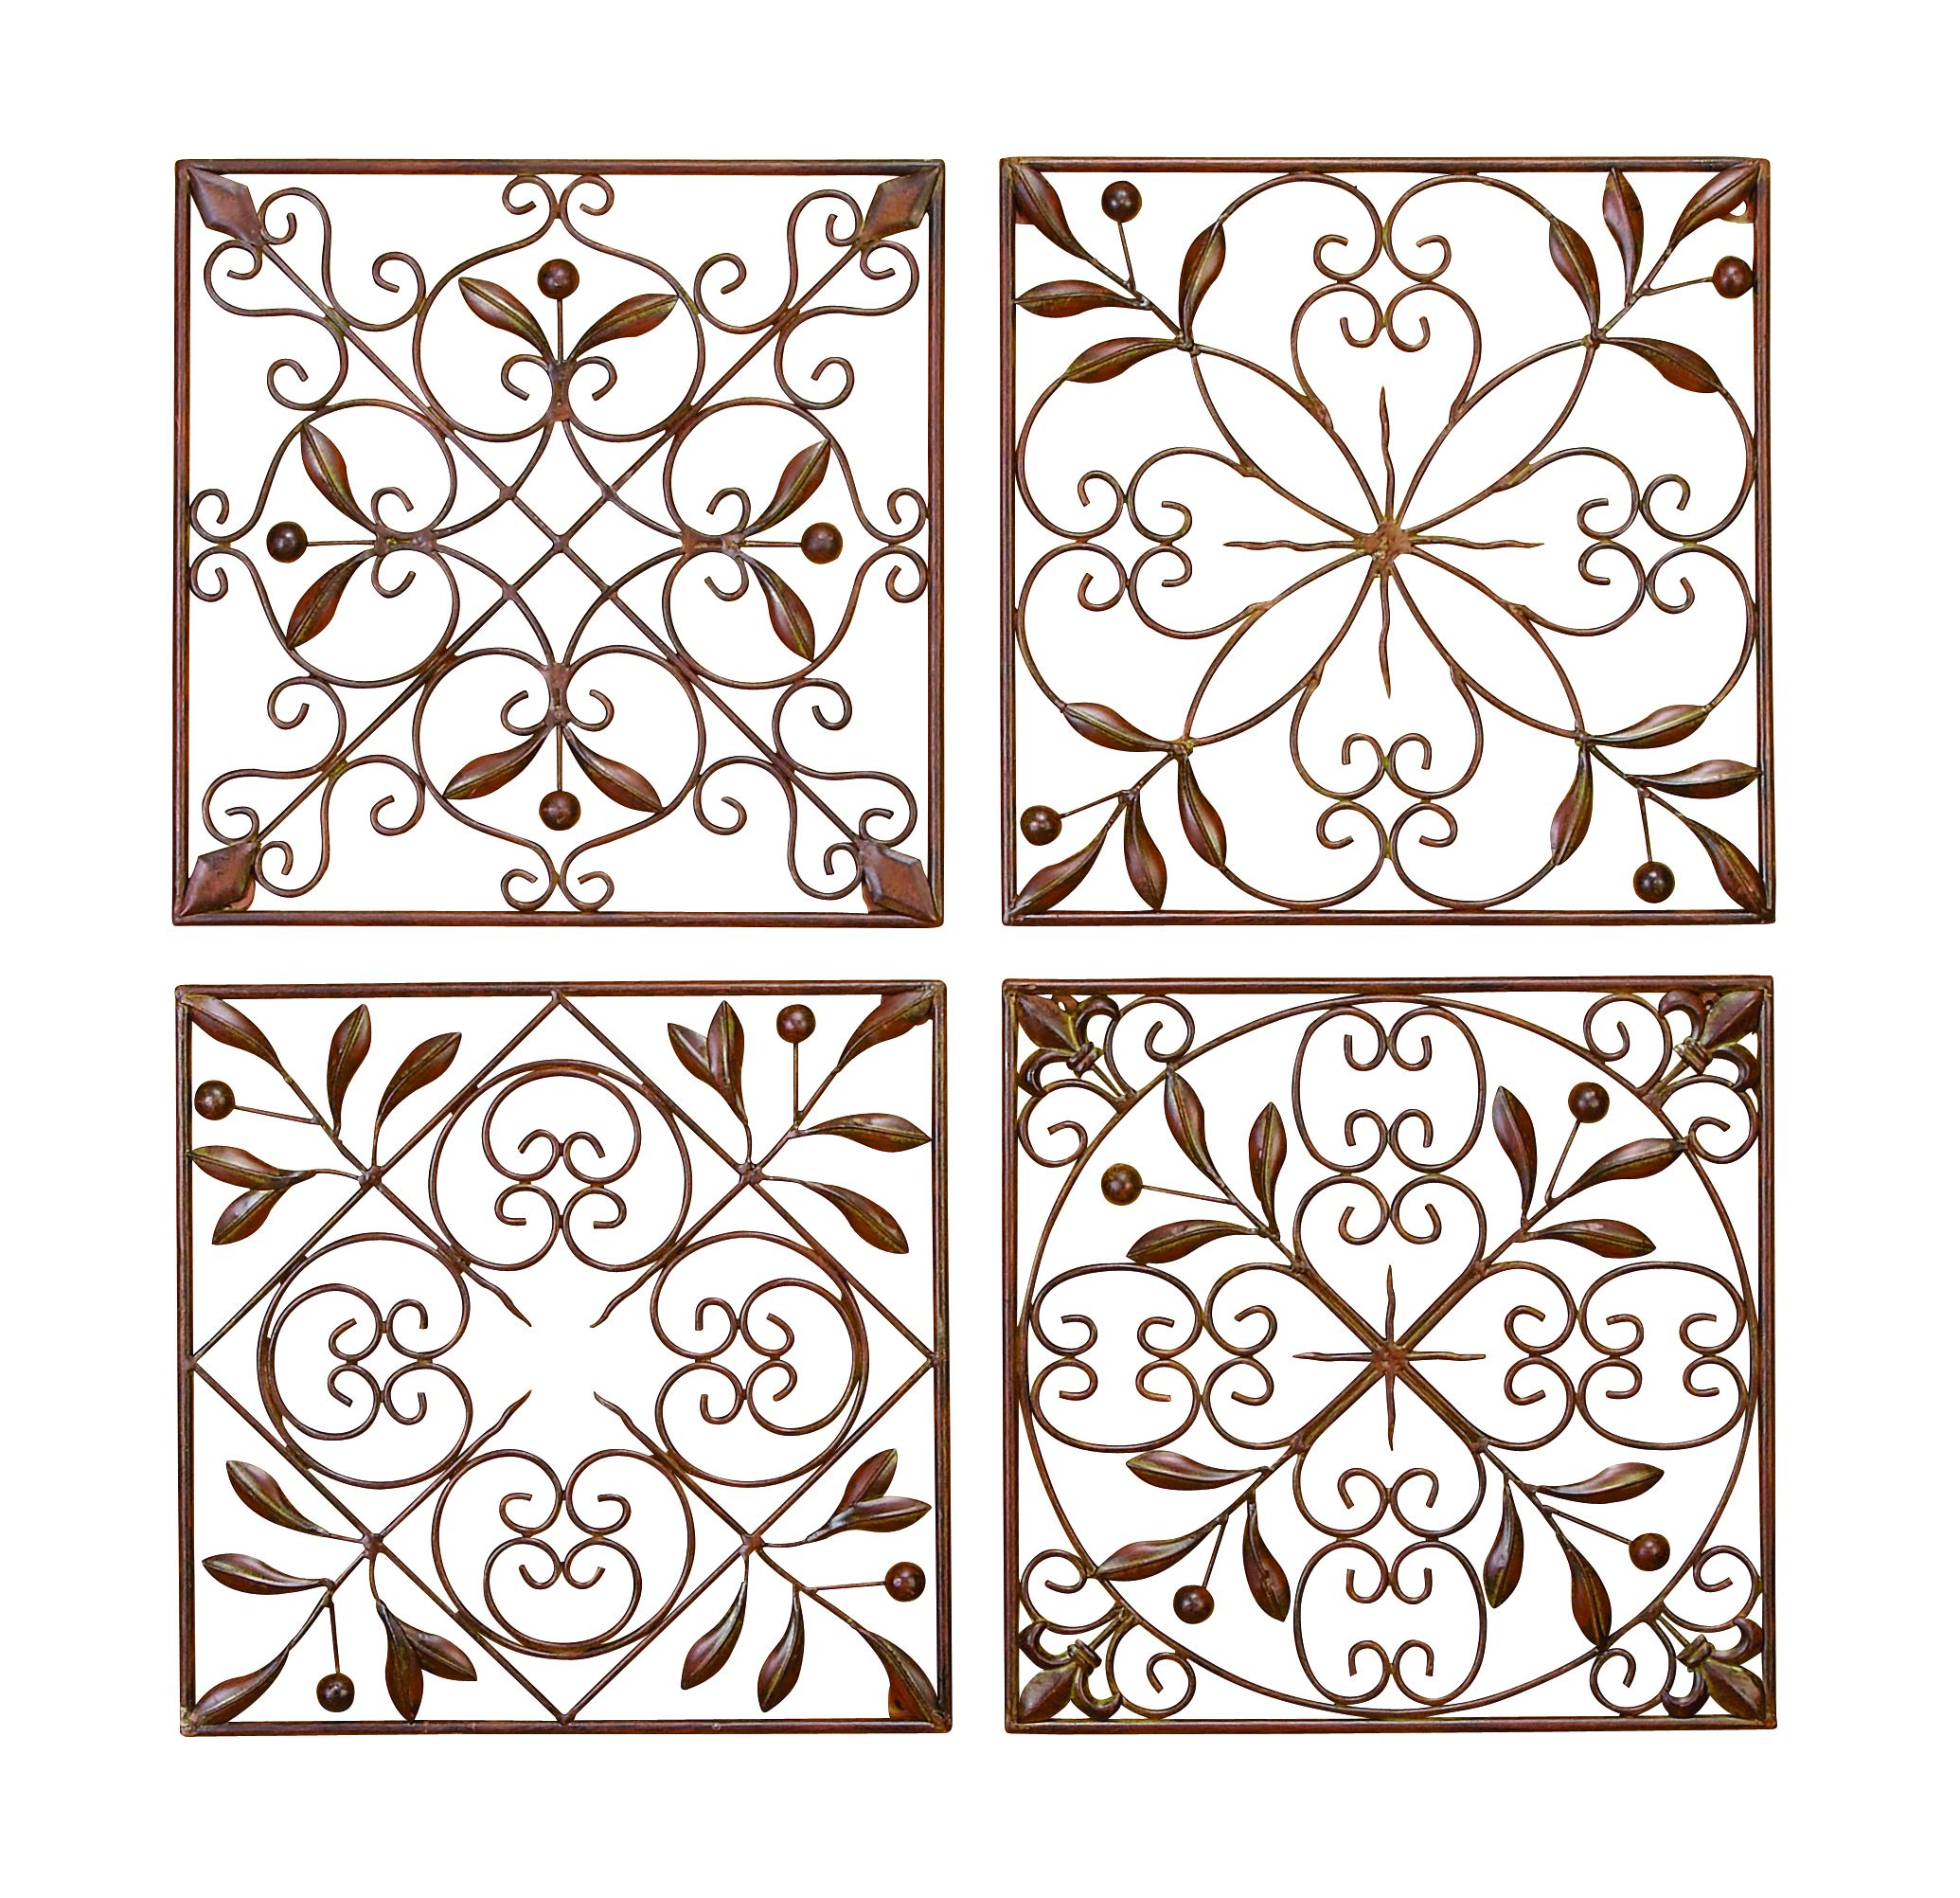 Metal Wall Decor, Set Of 4 Metal Filigrees To Hang Anywhere by Benzara